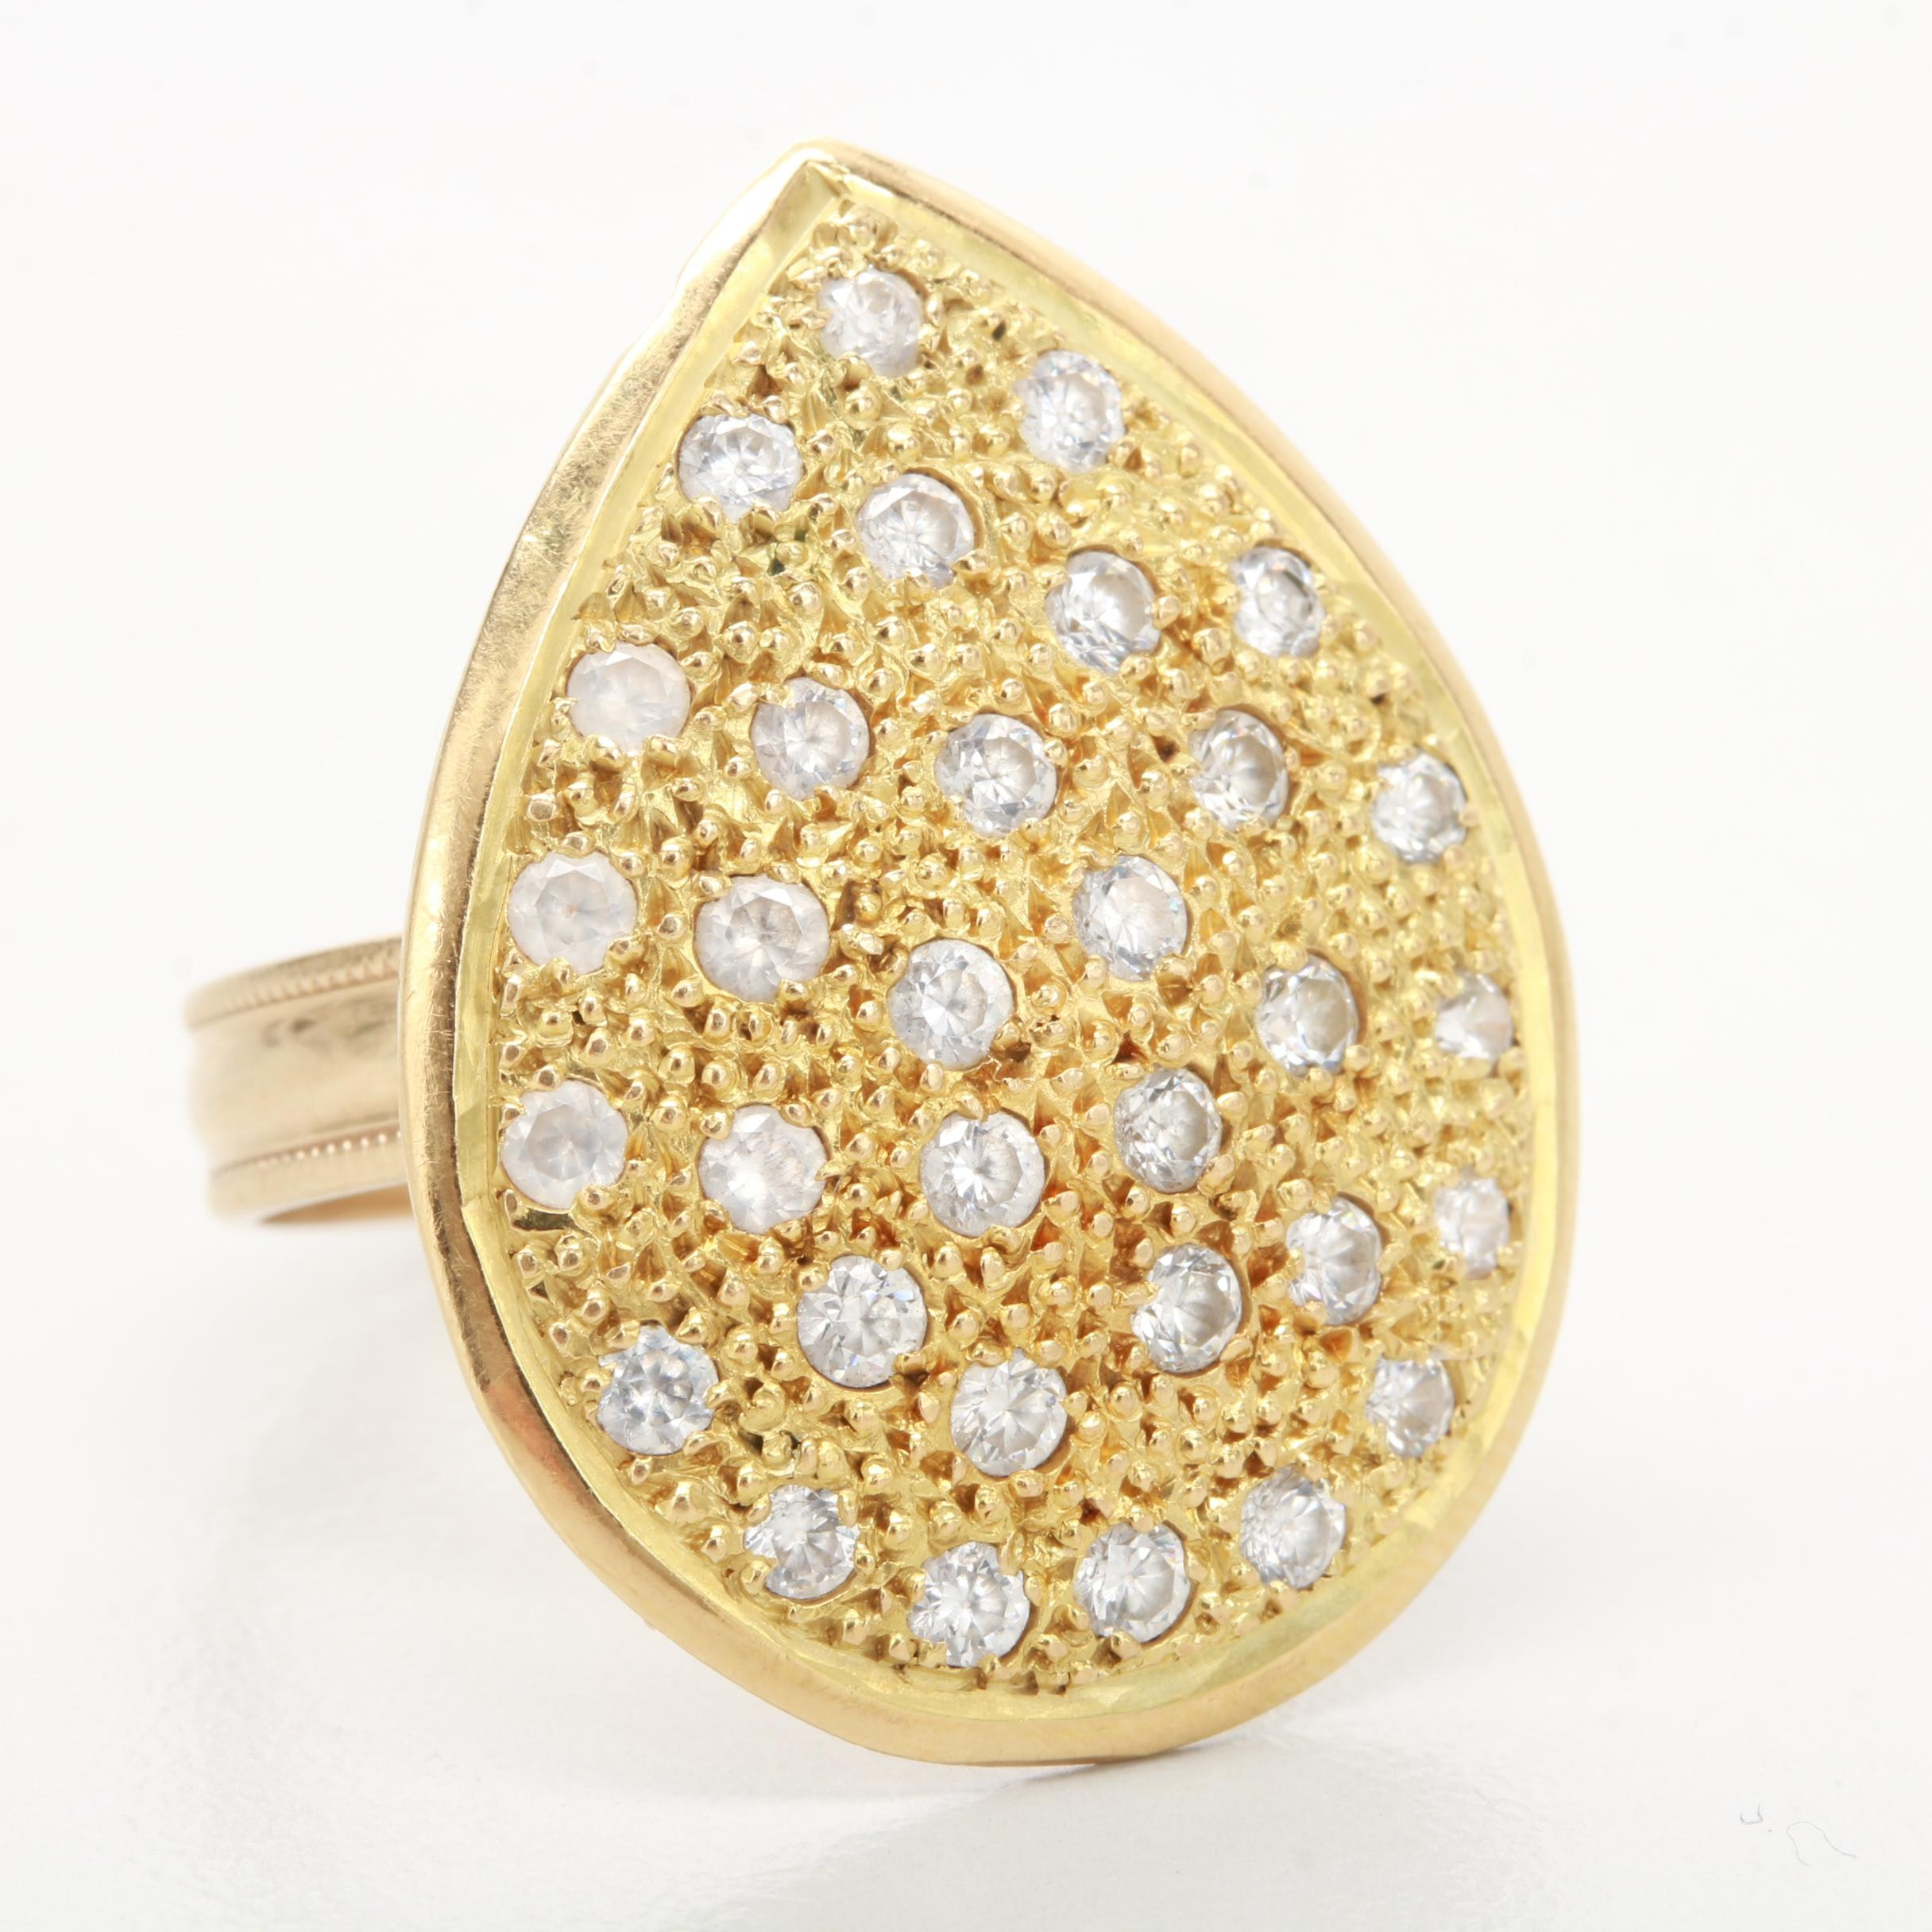 10K and 18K Yellow Gold Cubic Zirconia Ring